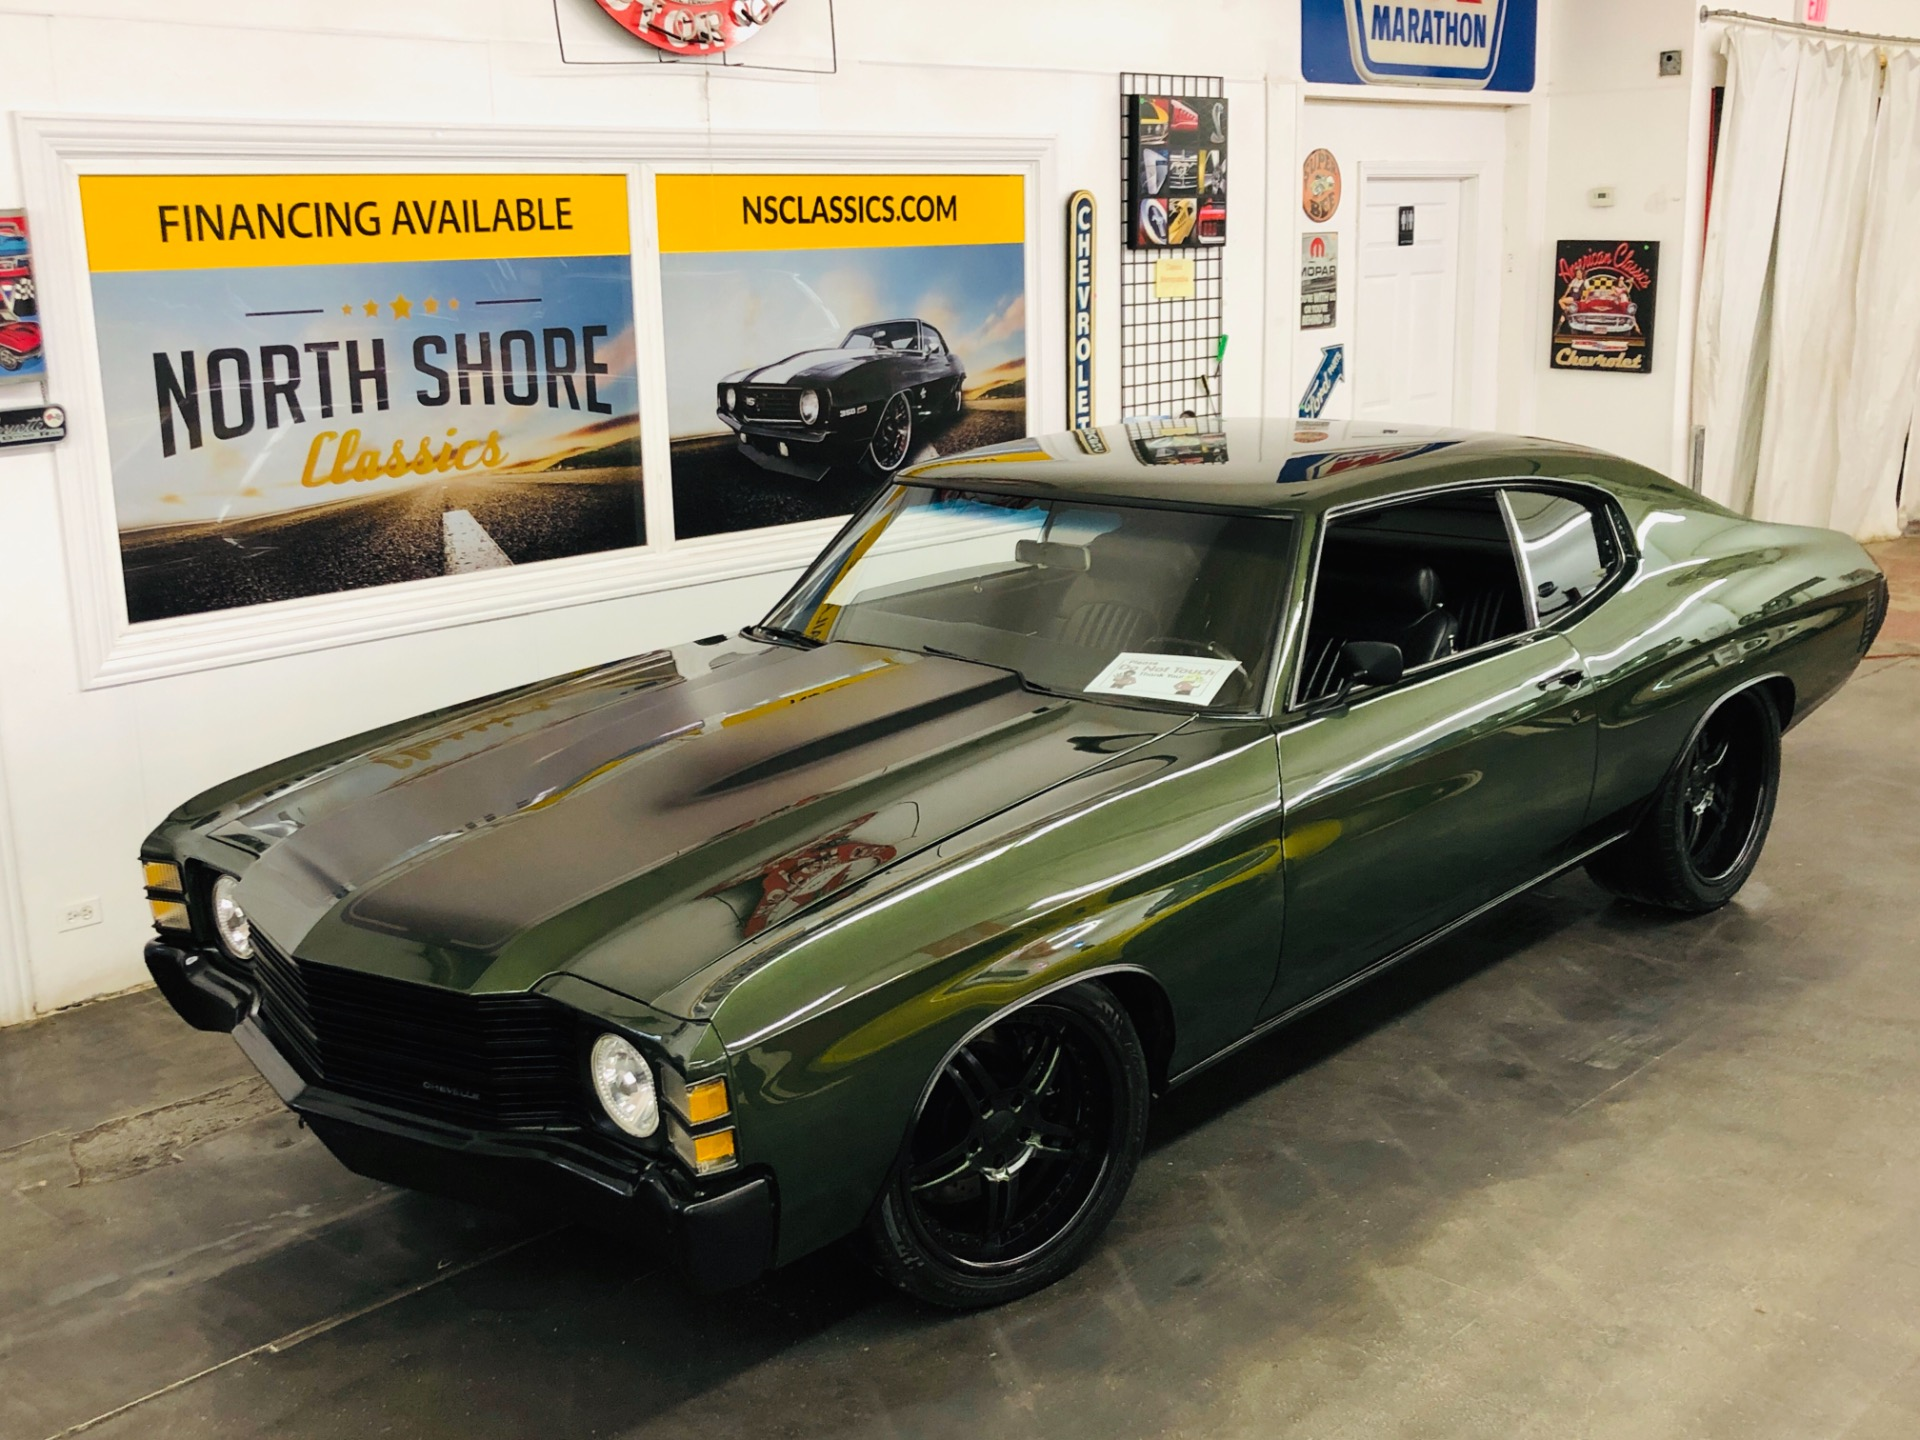 Used 1971 Chevrolet Chevelle - 540 BIG BLOCK - 6 SPEED TRANS - PRO TOURING BUILD - SEE VIDEO | Mundelein, IL